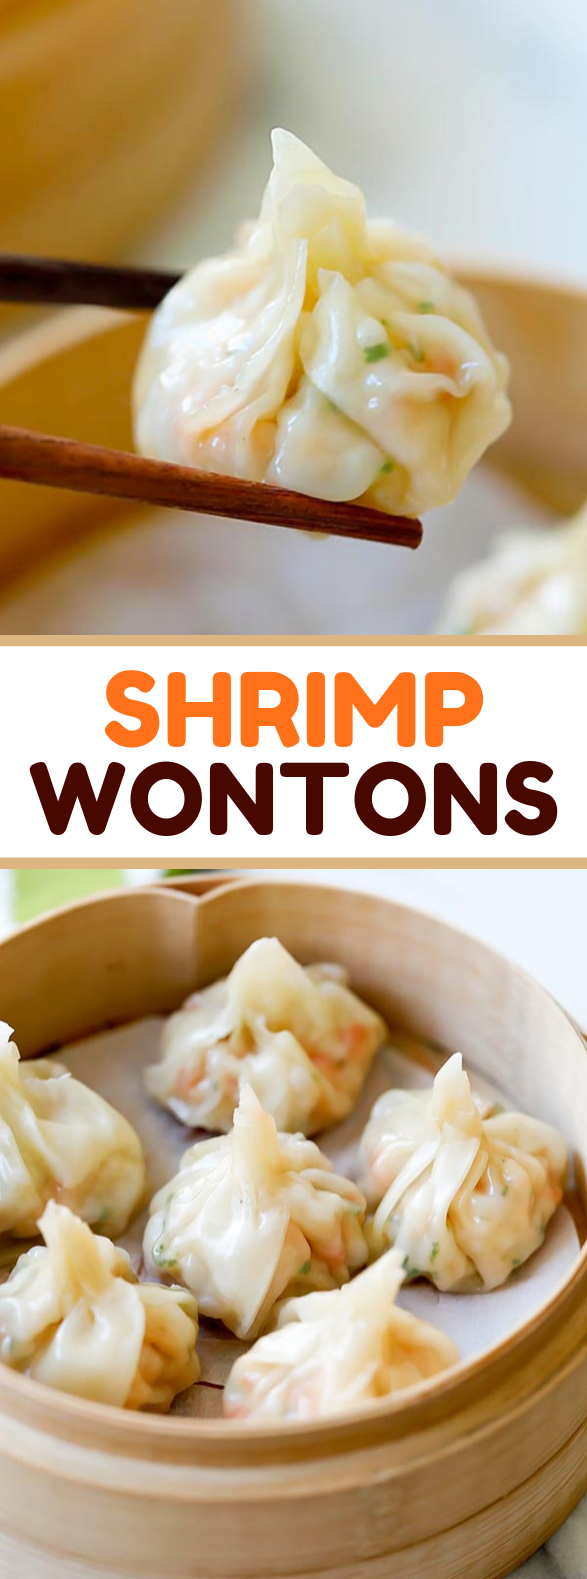 SHRIMP WONTONS #dinner #simplerecipes #protein #seafood #lunch